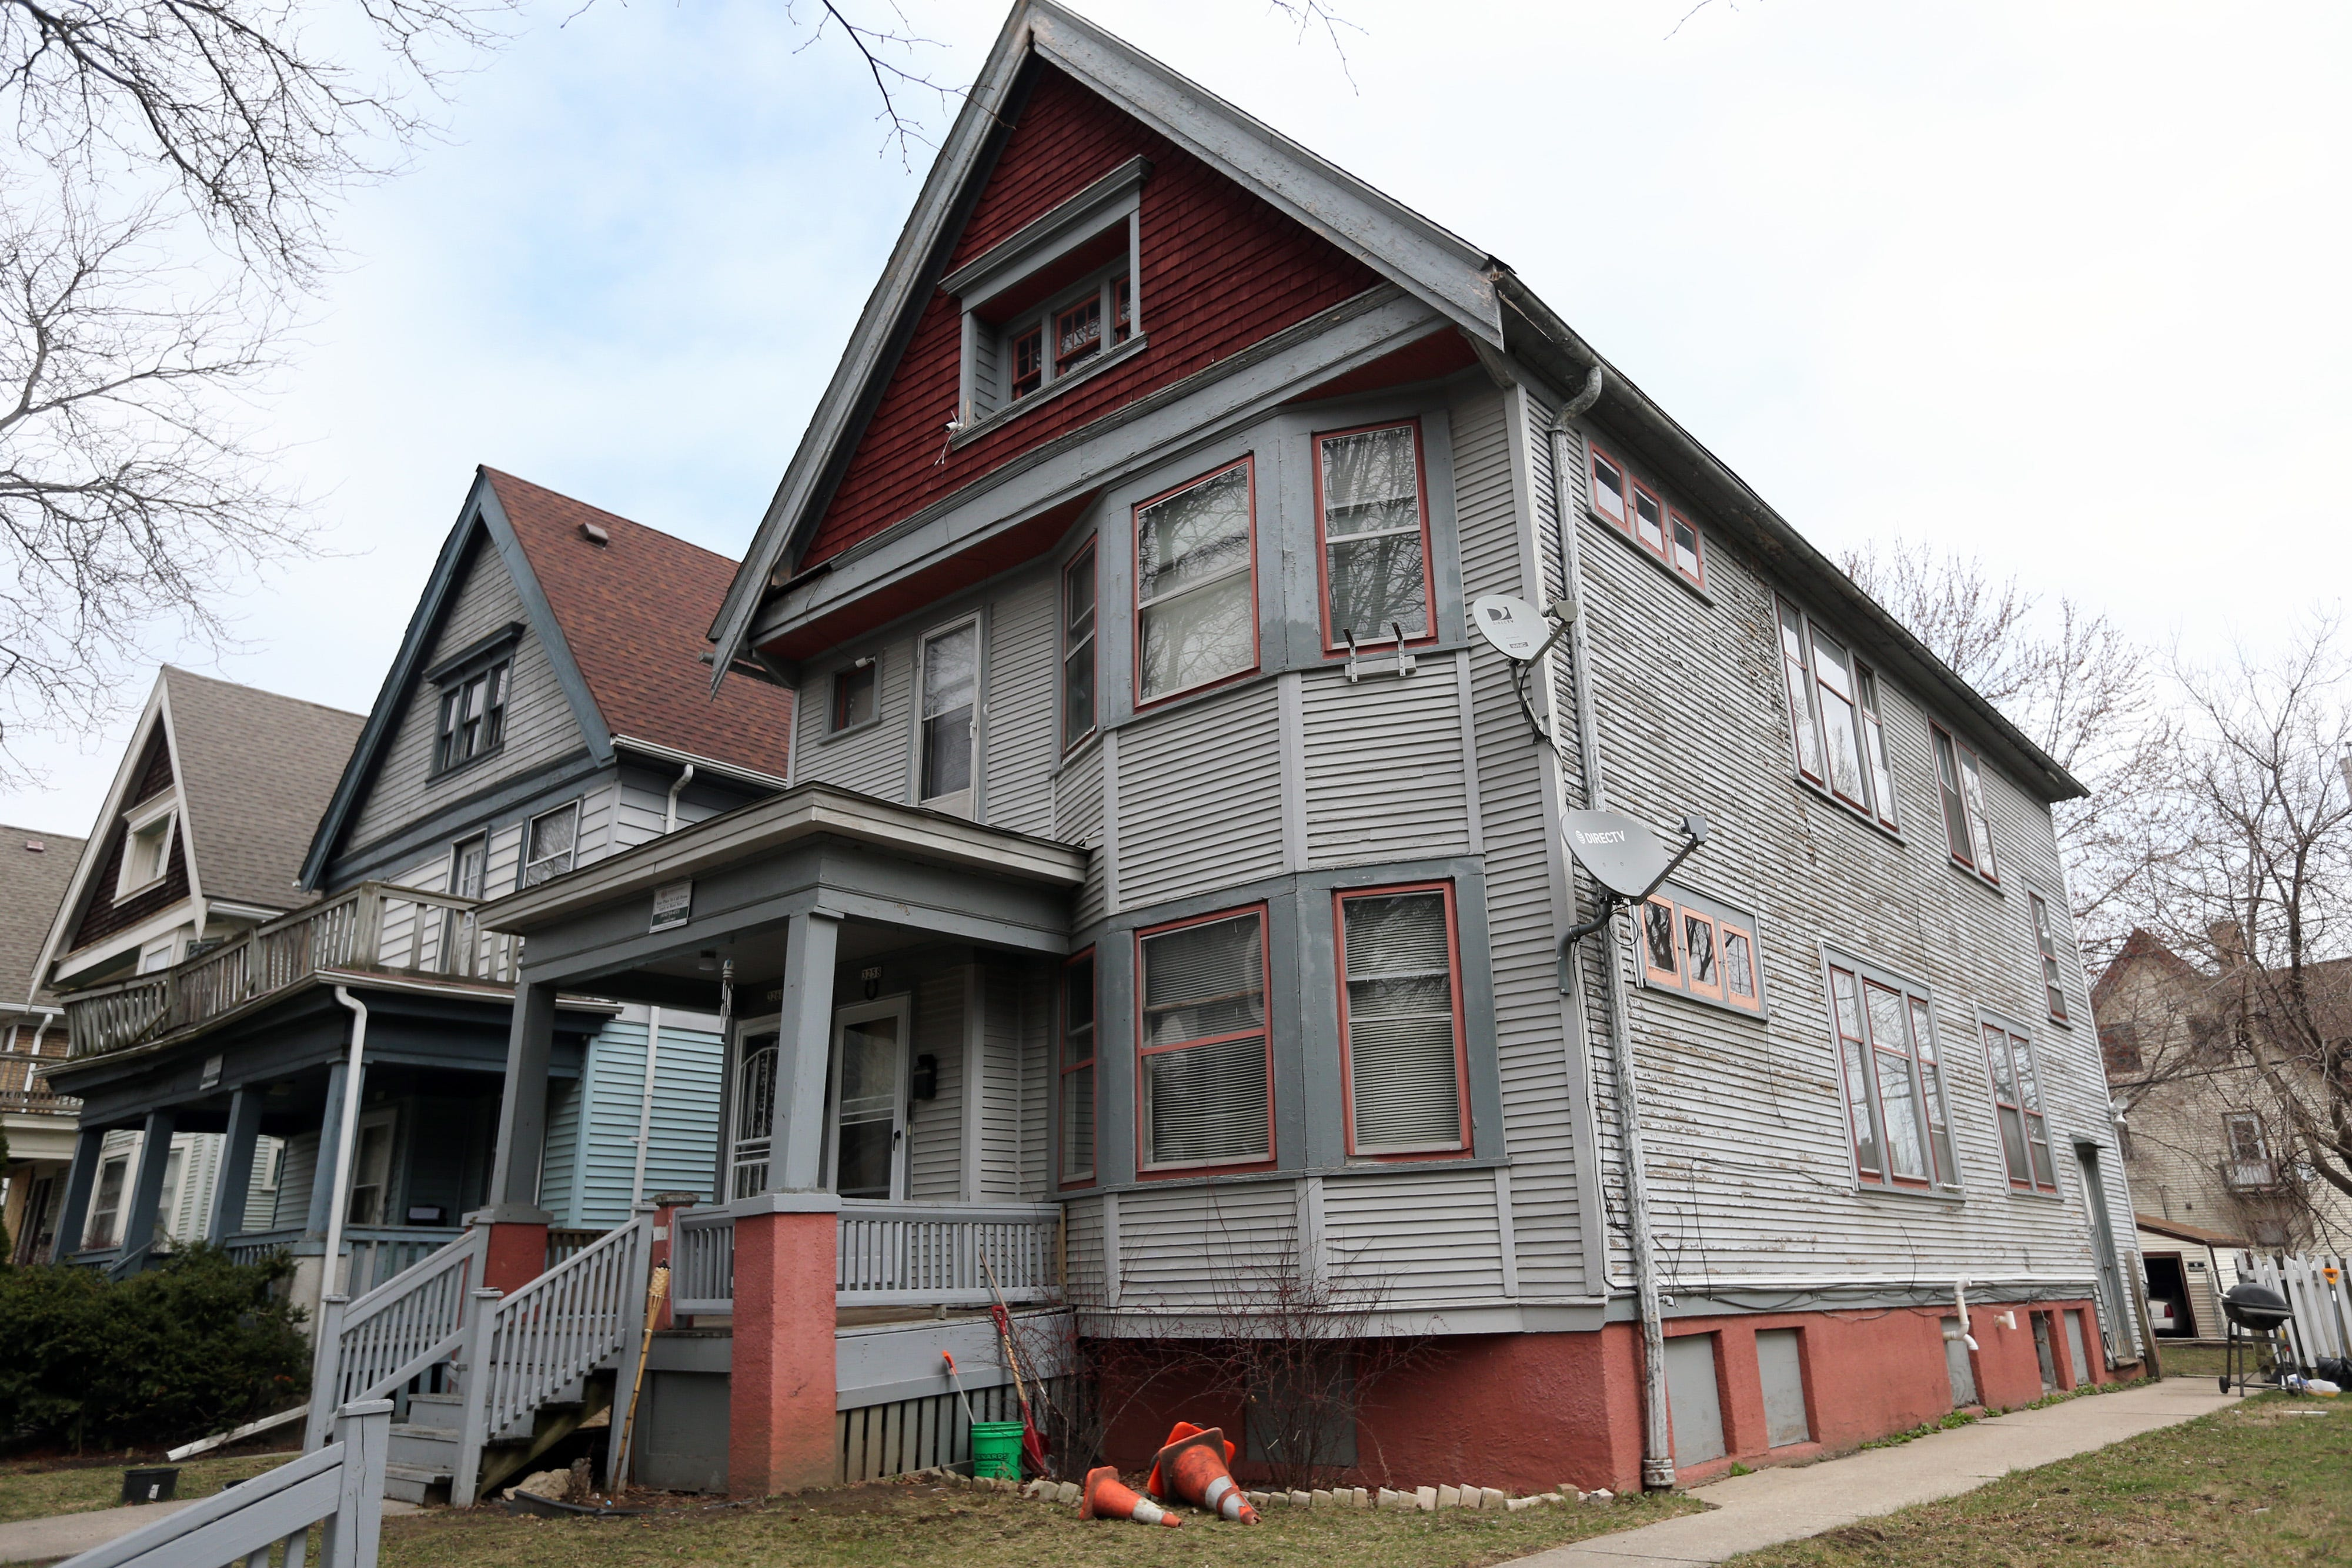 Sylvester Norwood's unit on North Buffum Street is seen on Friday, March 26, 2021. He been renting this unit for several years. A California company bought it last year.